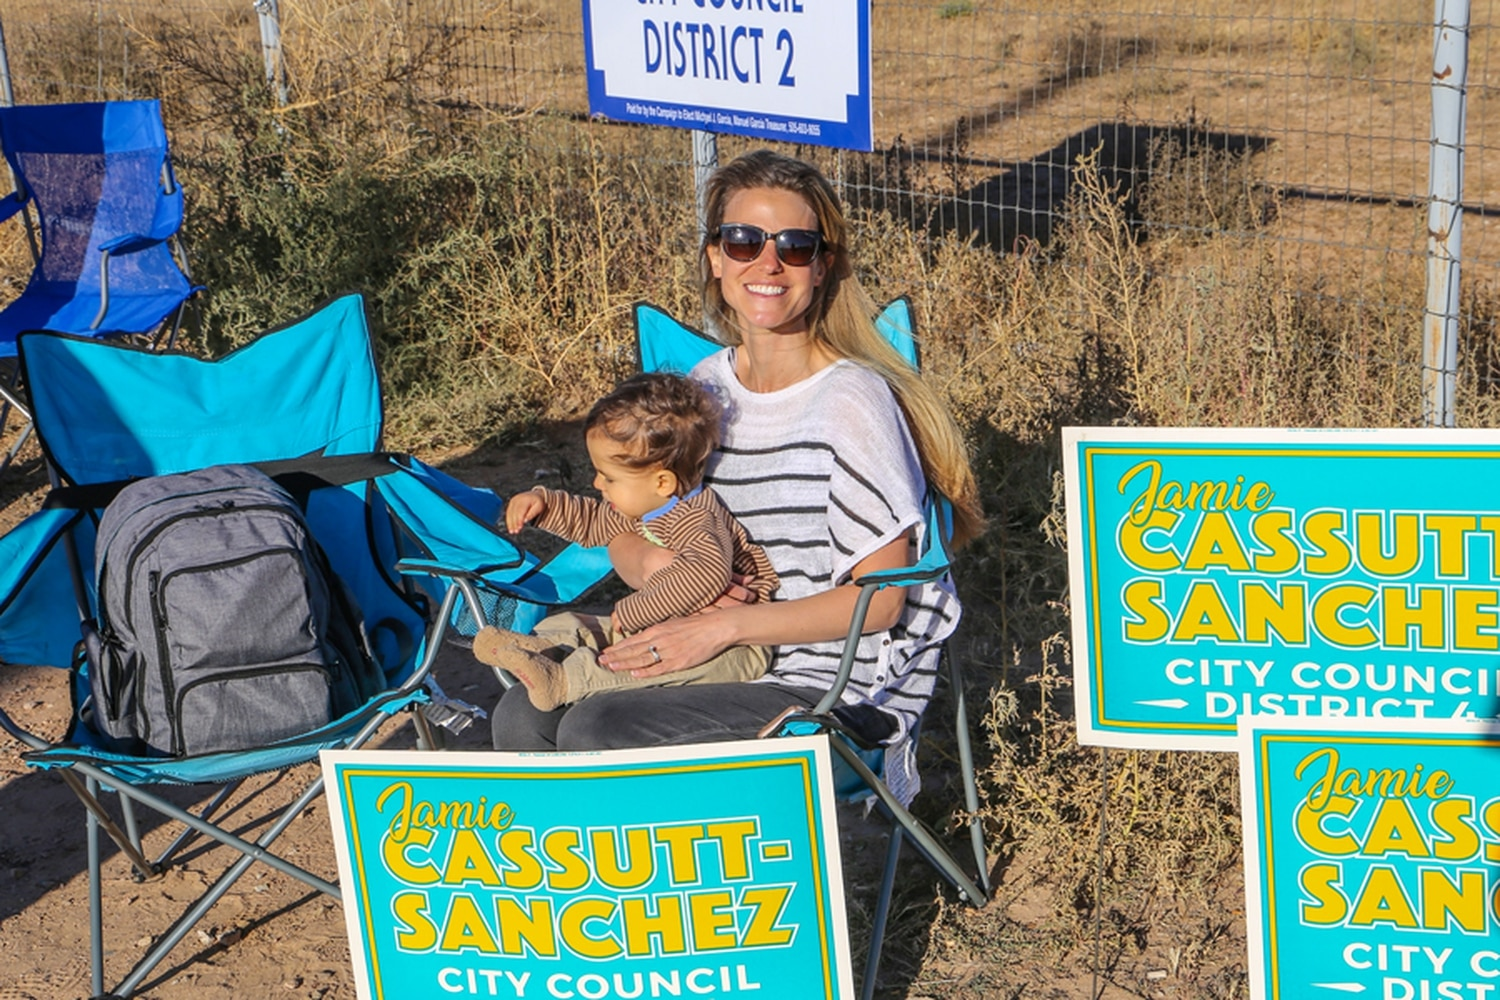 Jamie Cassutt-Sanchez and her son, Oliver, sit outside the Santa Fe County Fairgrounds on Tuesday afternoon to woo voters.